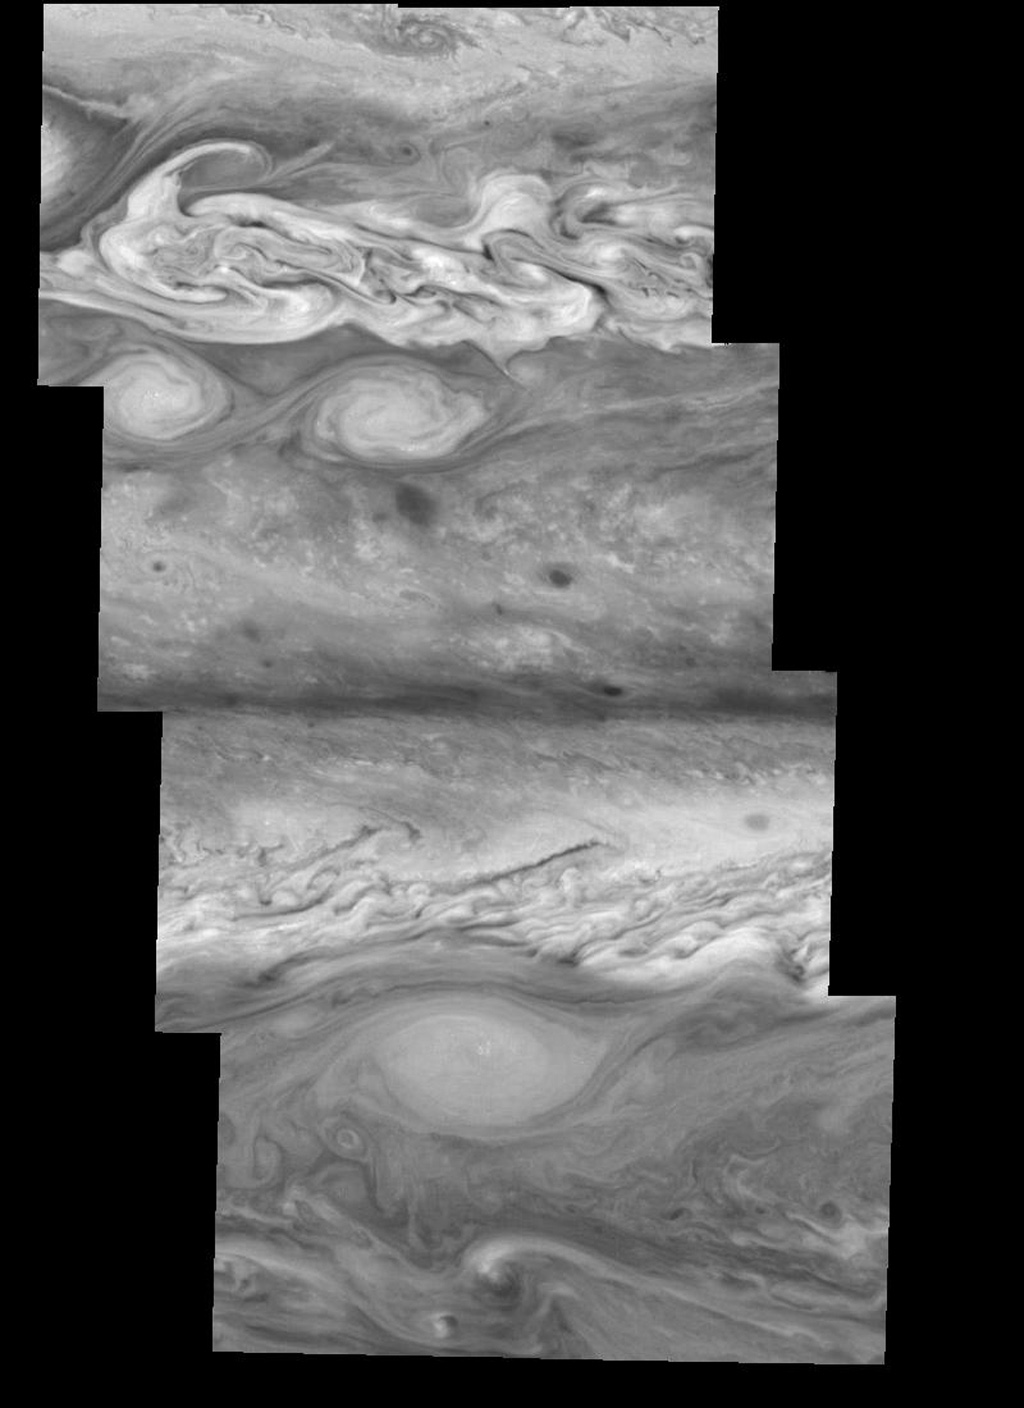 Jupiter's atmospheric circulation is dominated by alternating eastward and westward jets from equatorial to polar latitudes. This image was taken on April 3, 1997, by NASA's Galileo spacecraft.